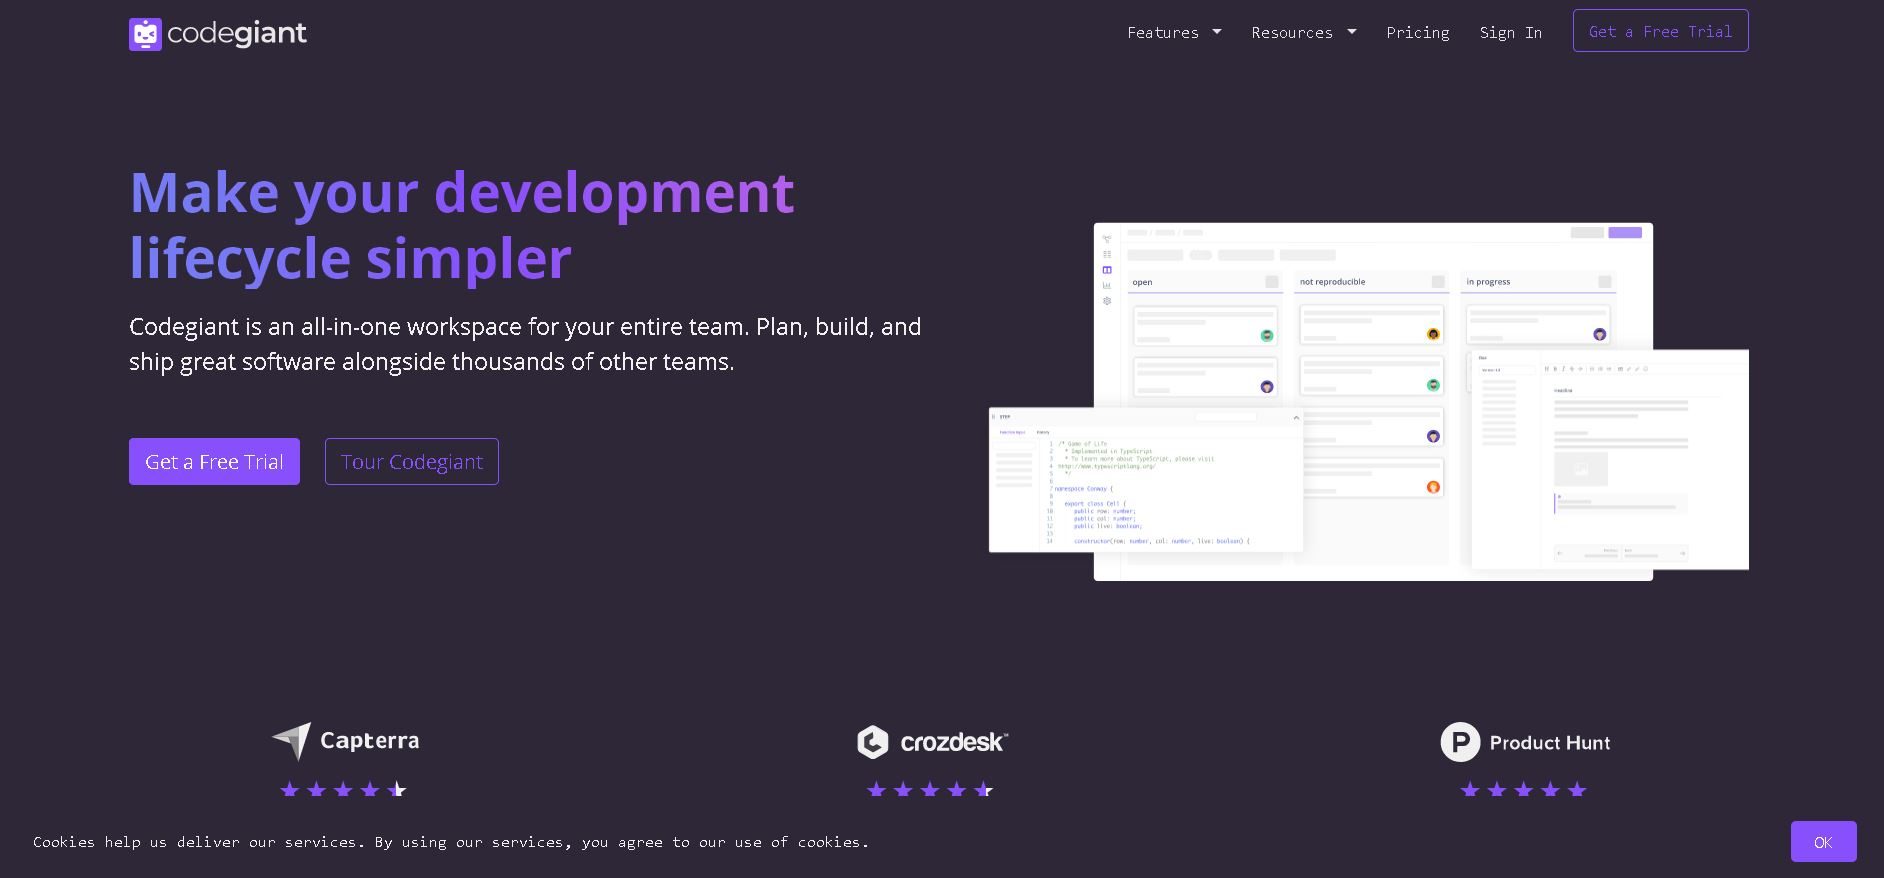 Codegiant is another popular alternative to GitHub. Pictured is the Codegiant homepage.